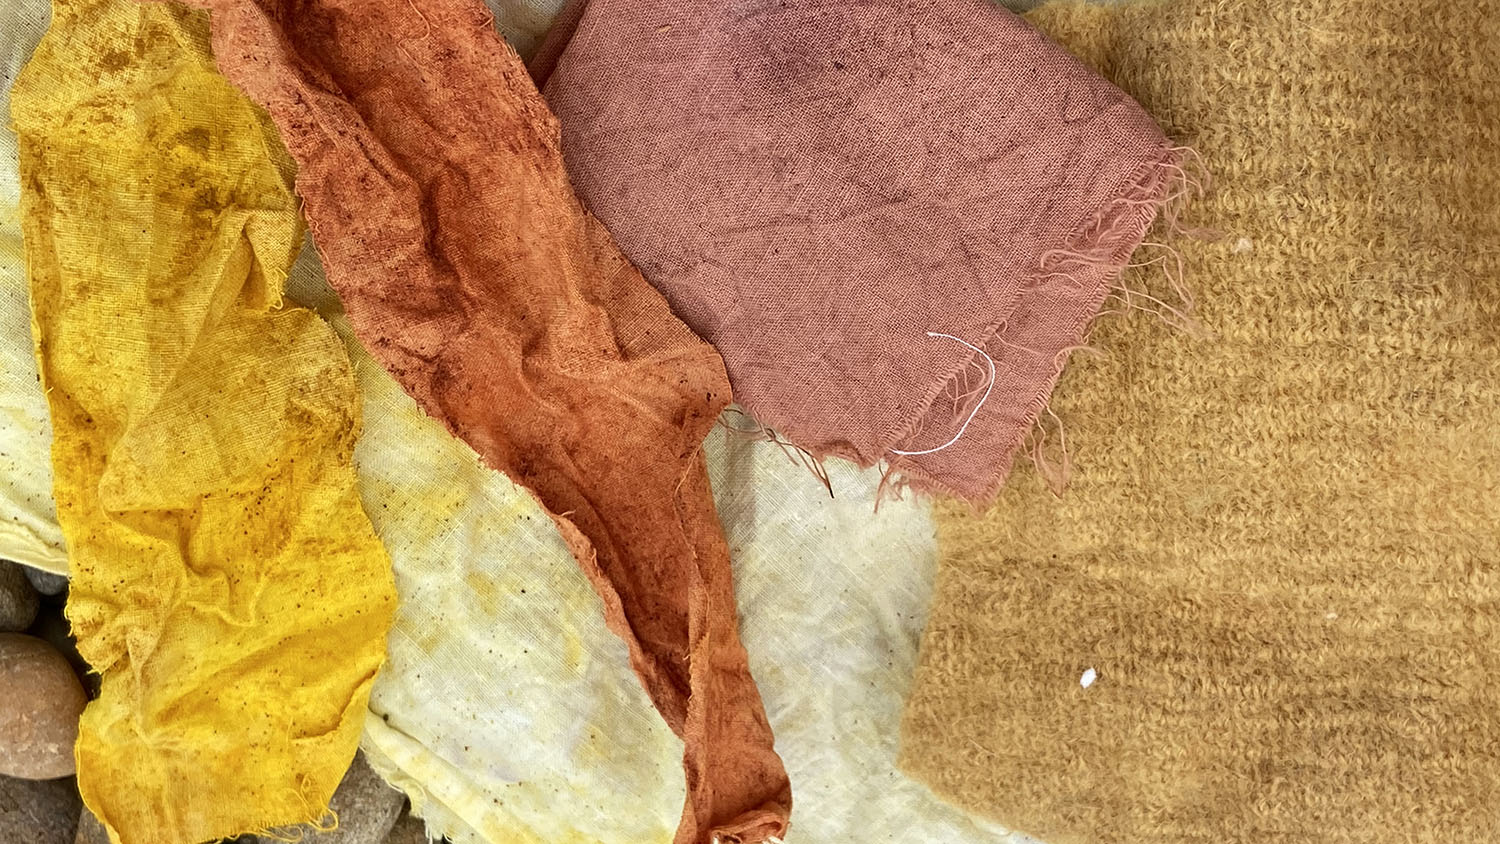 Fabrics of different textures and colors